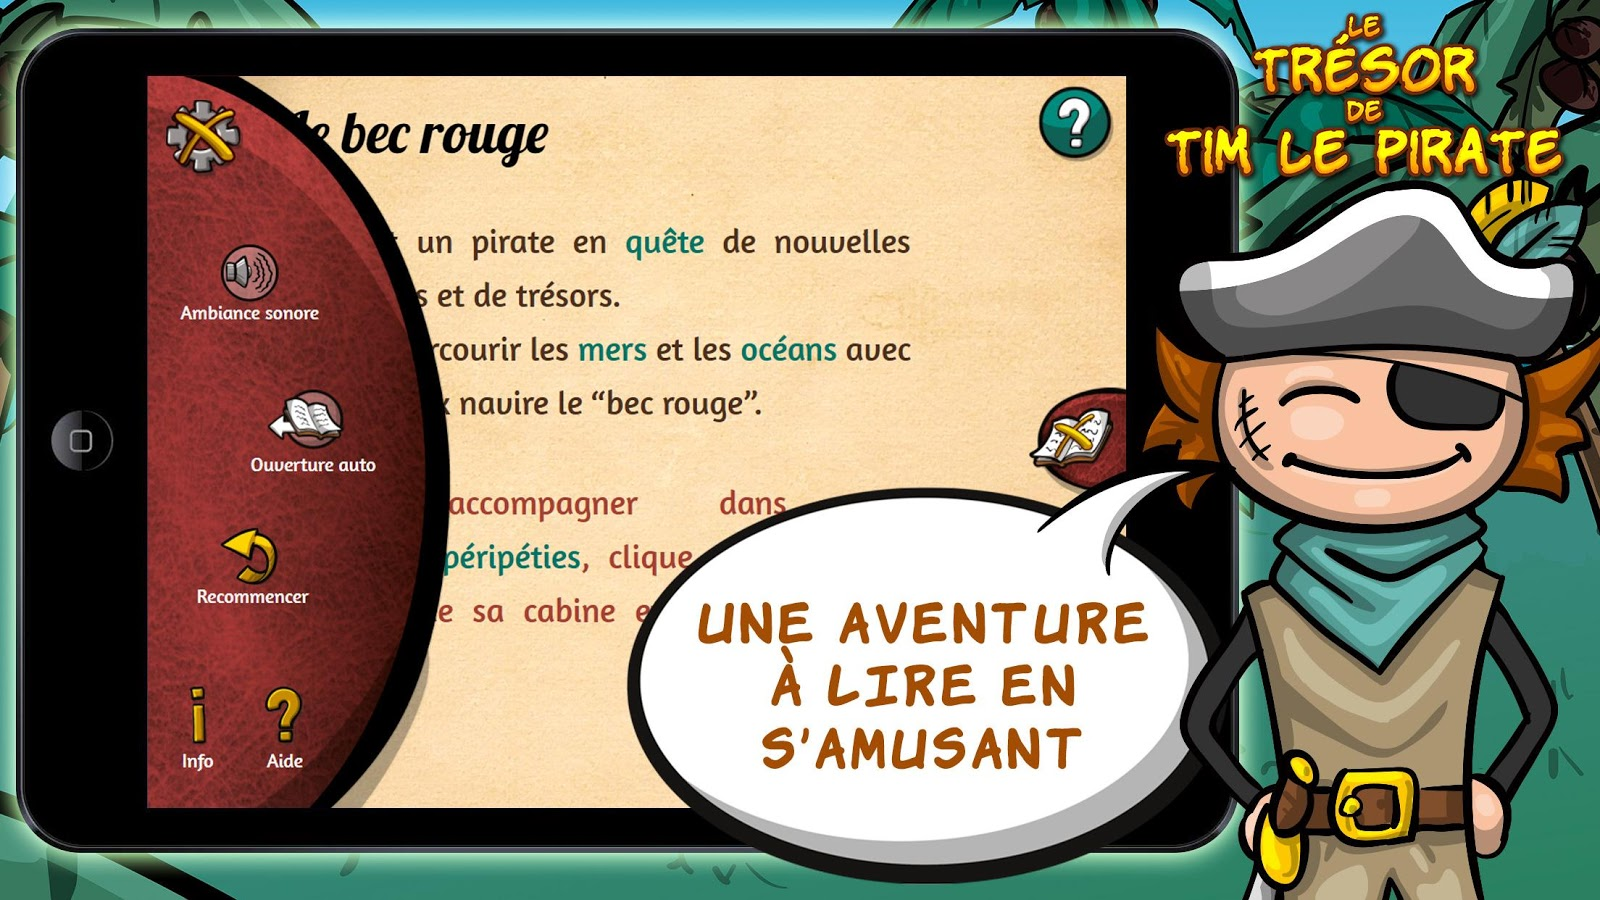 Le trésor de Tim le pirate – Capture d'écran